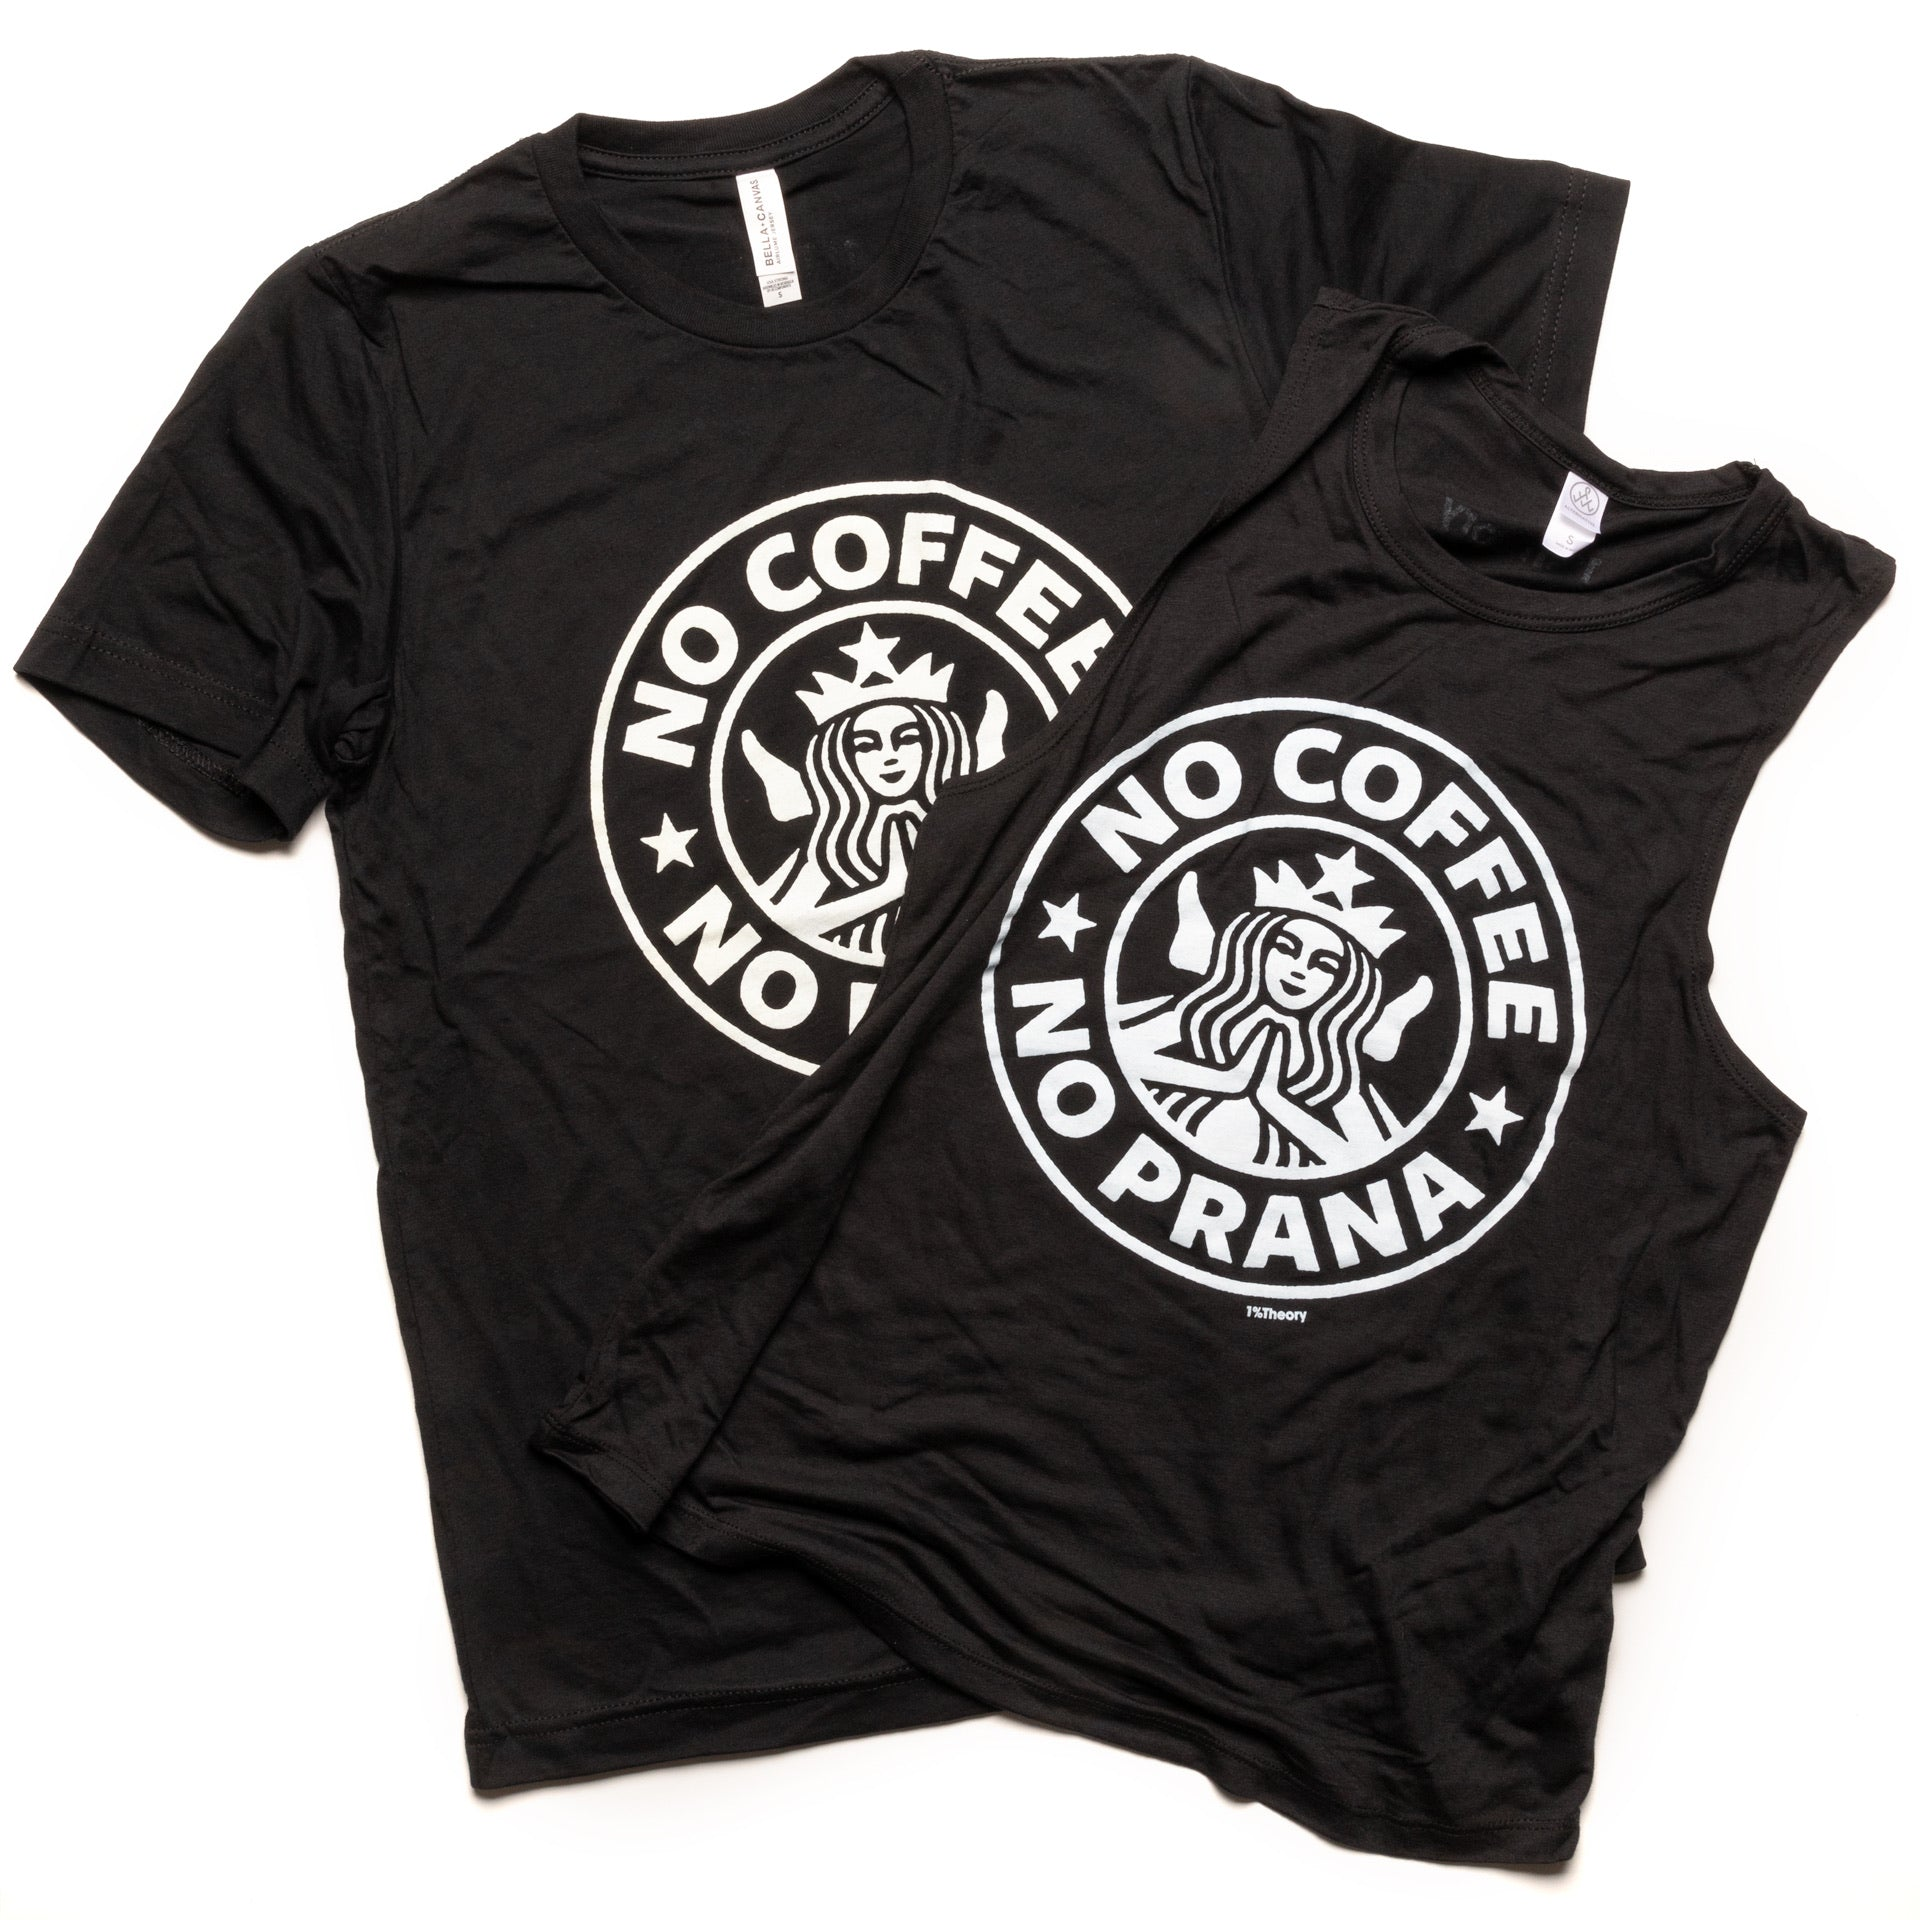 Unisex No Coffee No Prana Tee